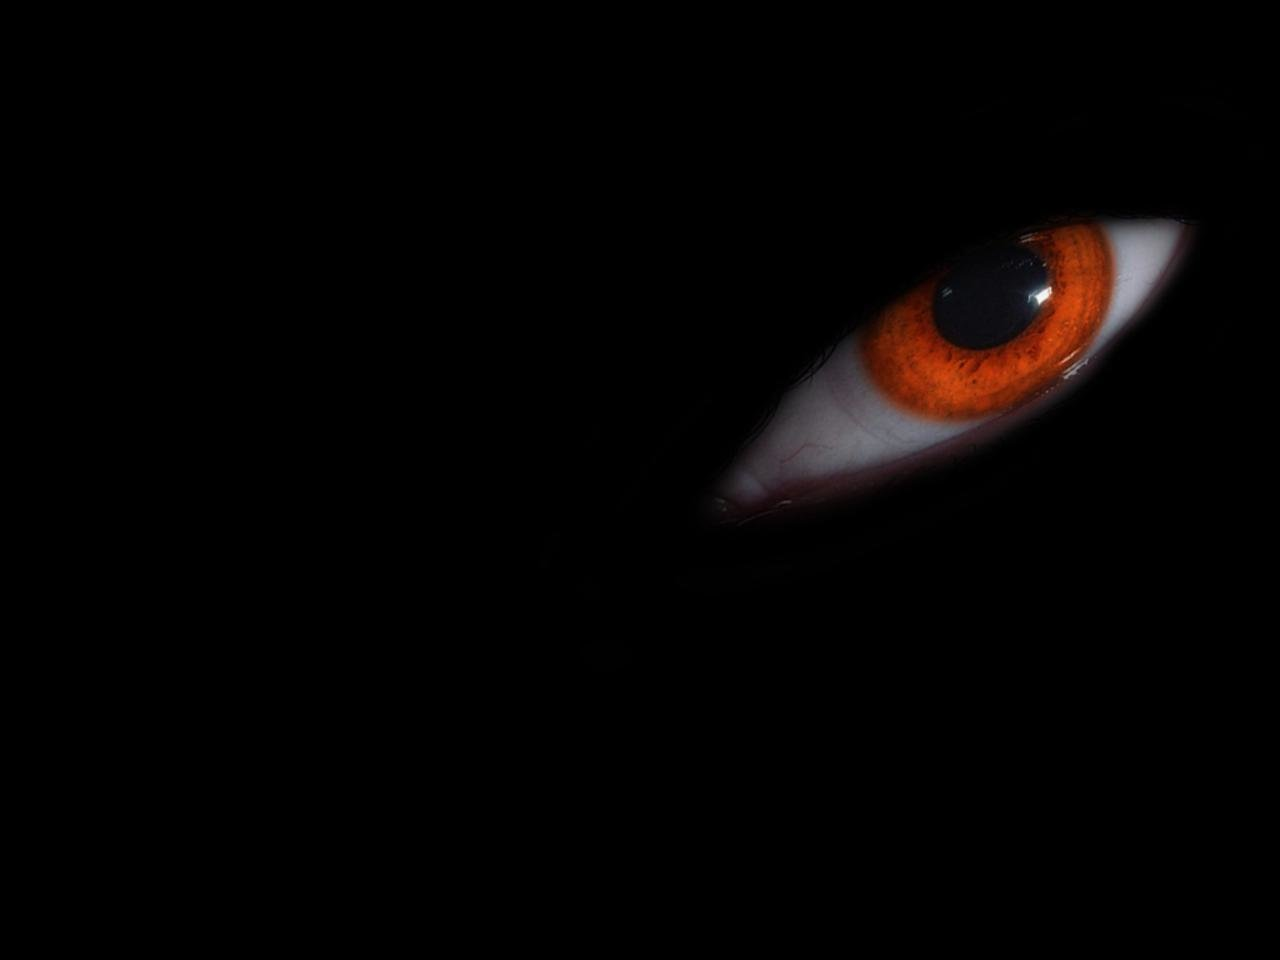 Download hd 1280x960 Evil eye PC background ID:496723 for free